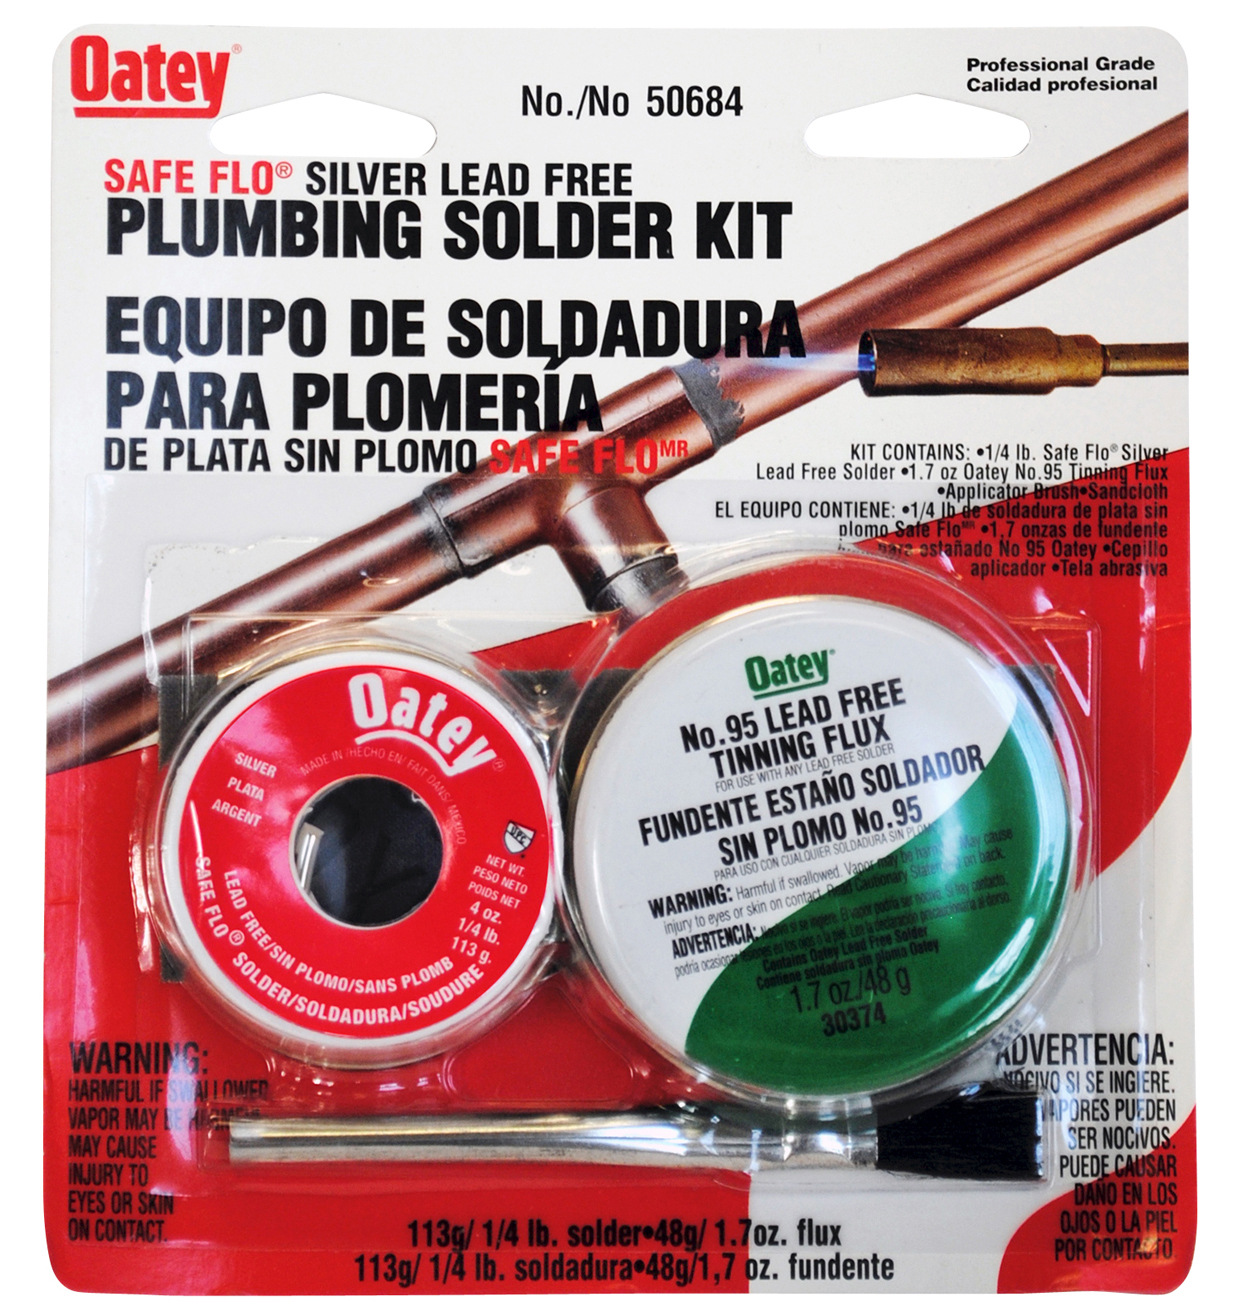 SOLDER KIT SAFE FLO